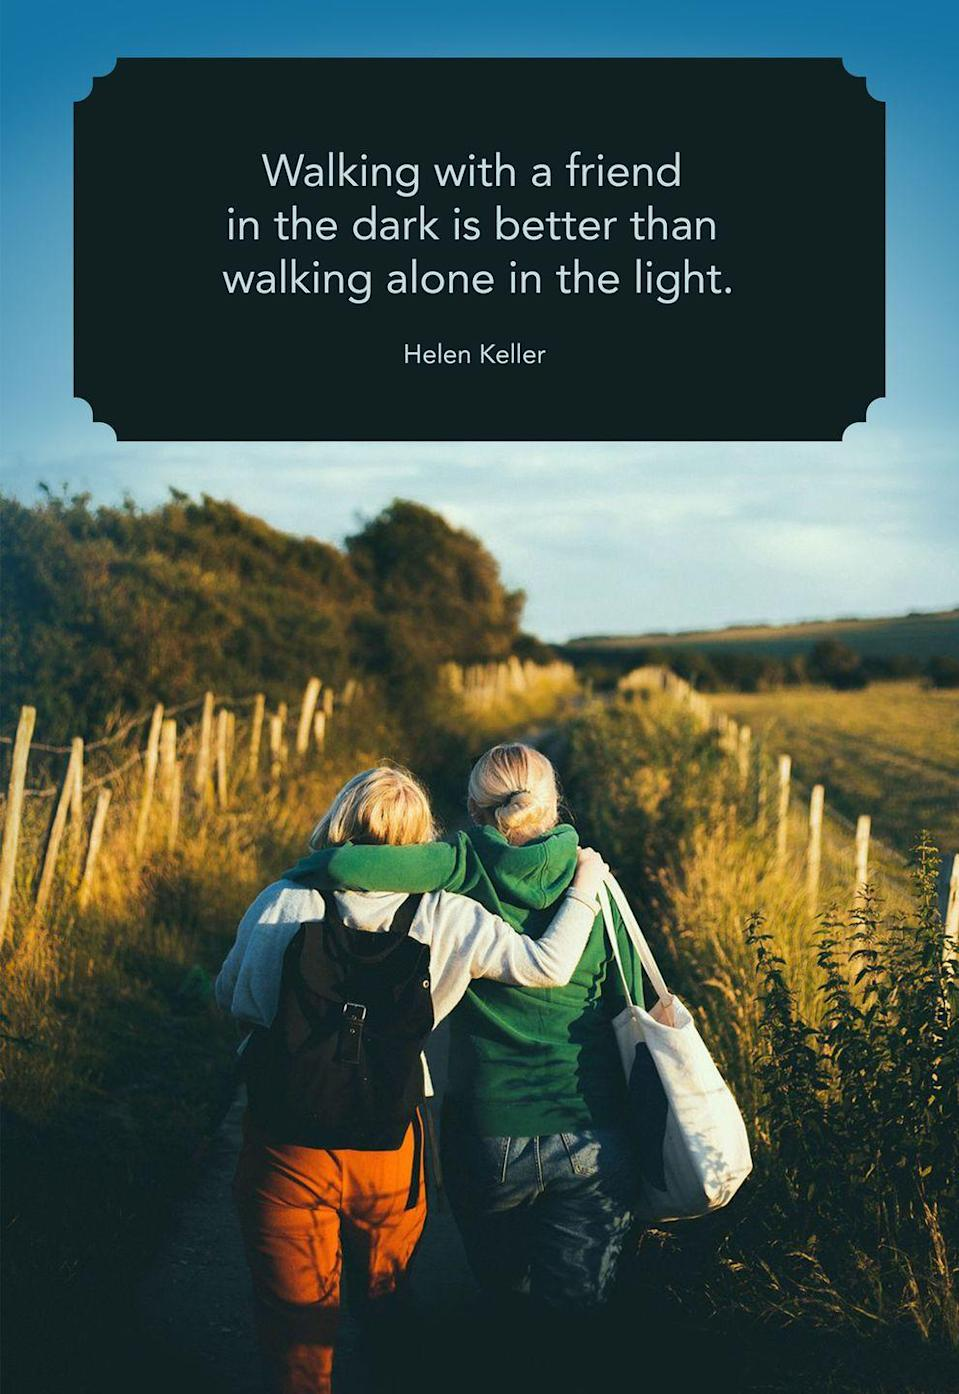 "<p>""Walking with a friend in the dark is better than walking alone in the light.""</p>"